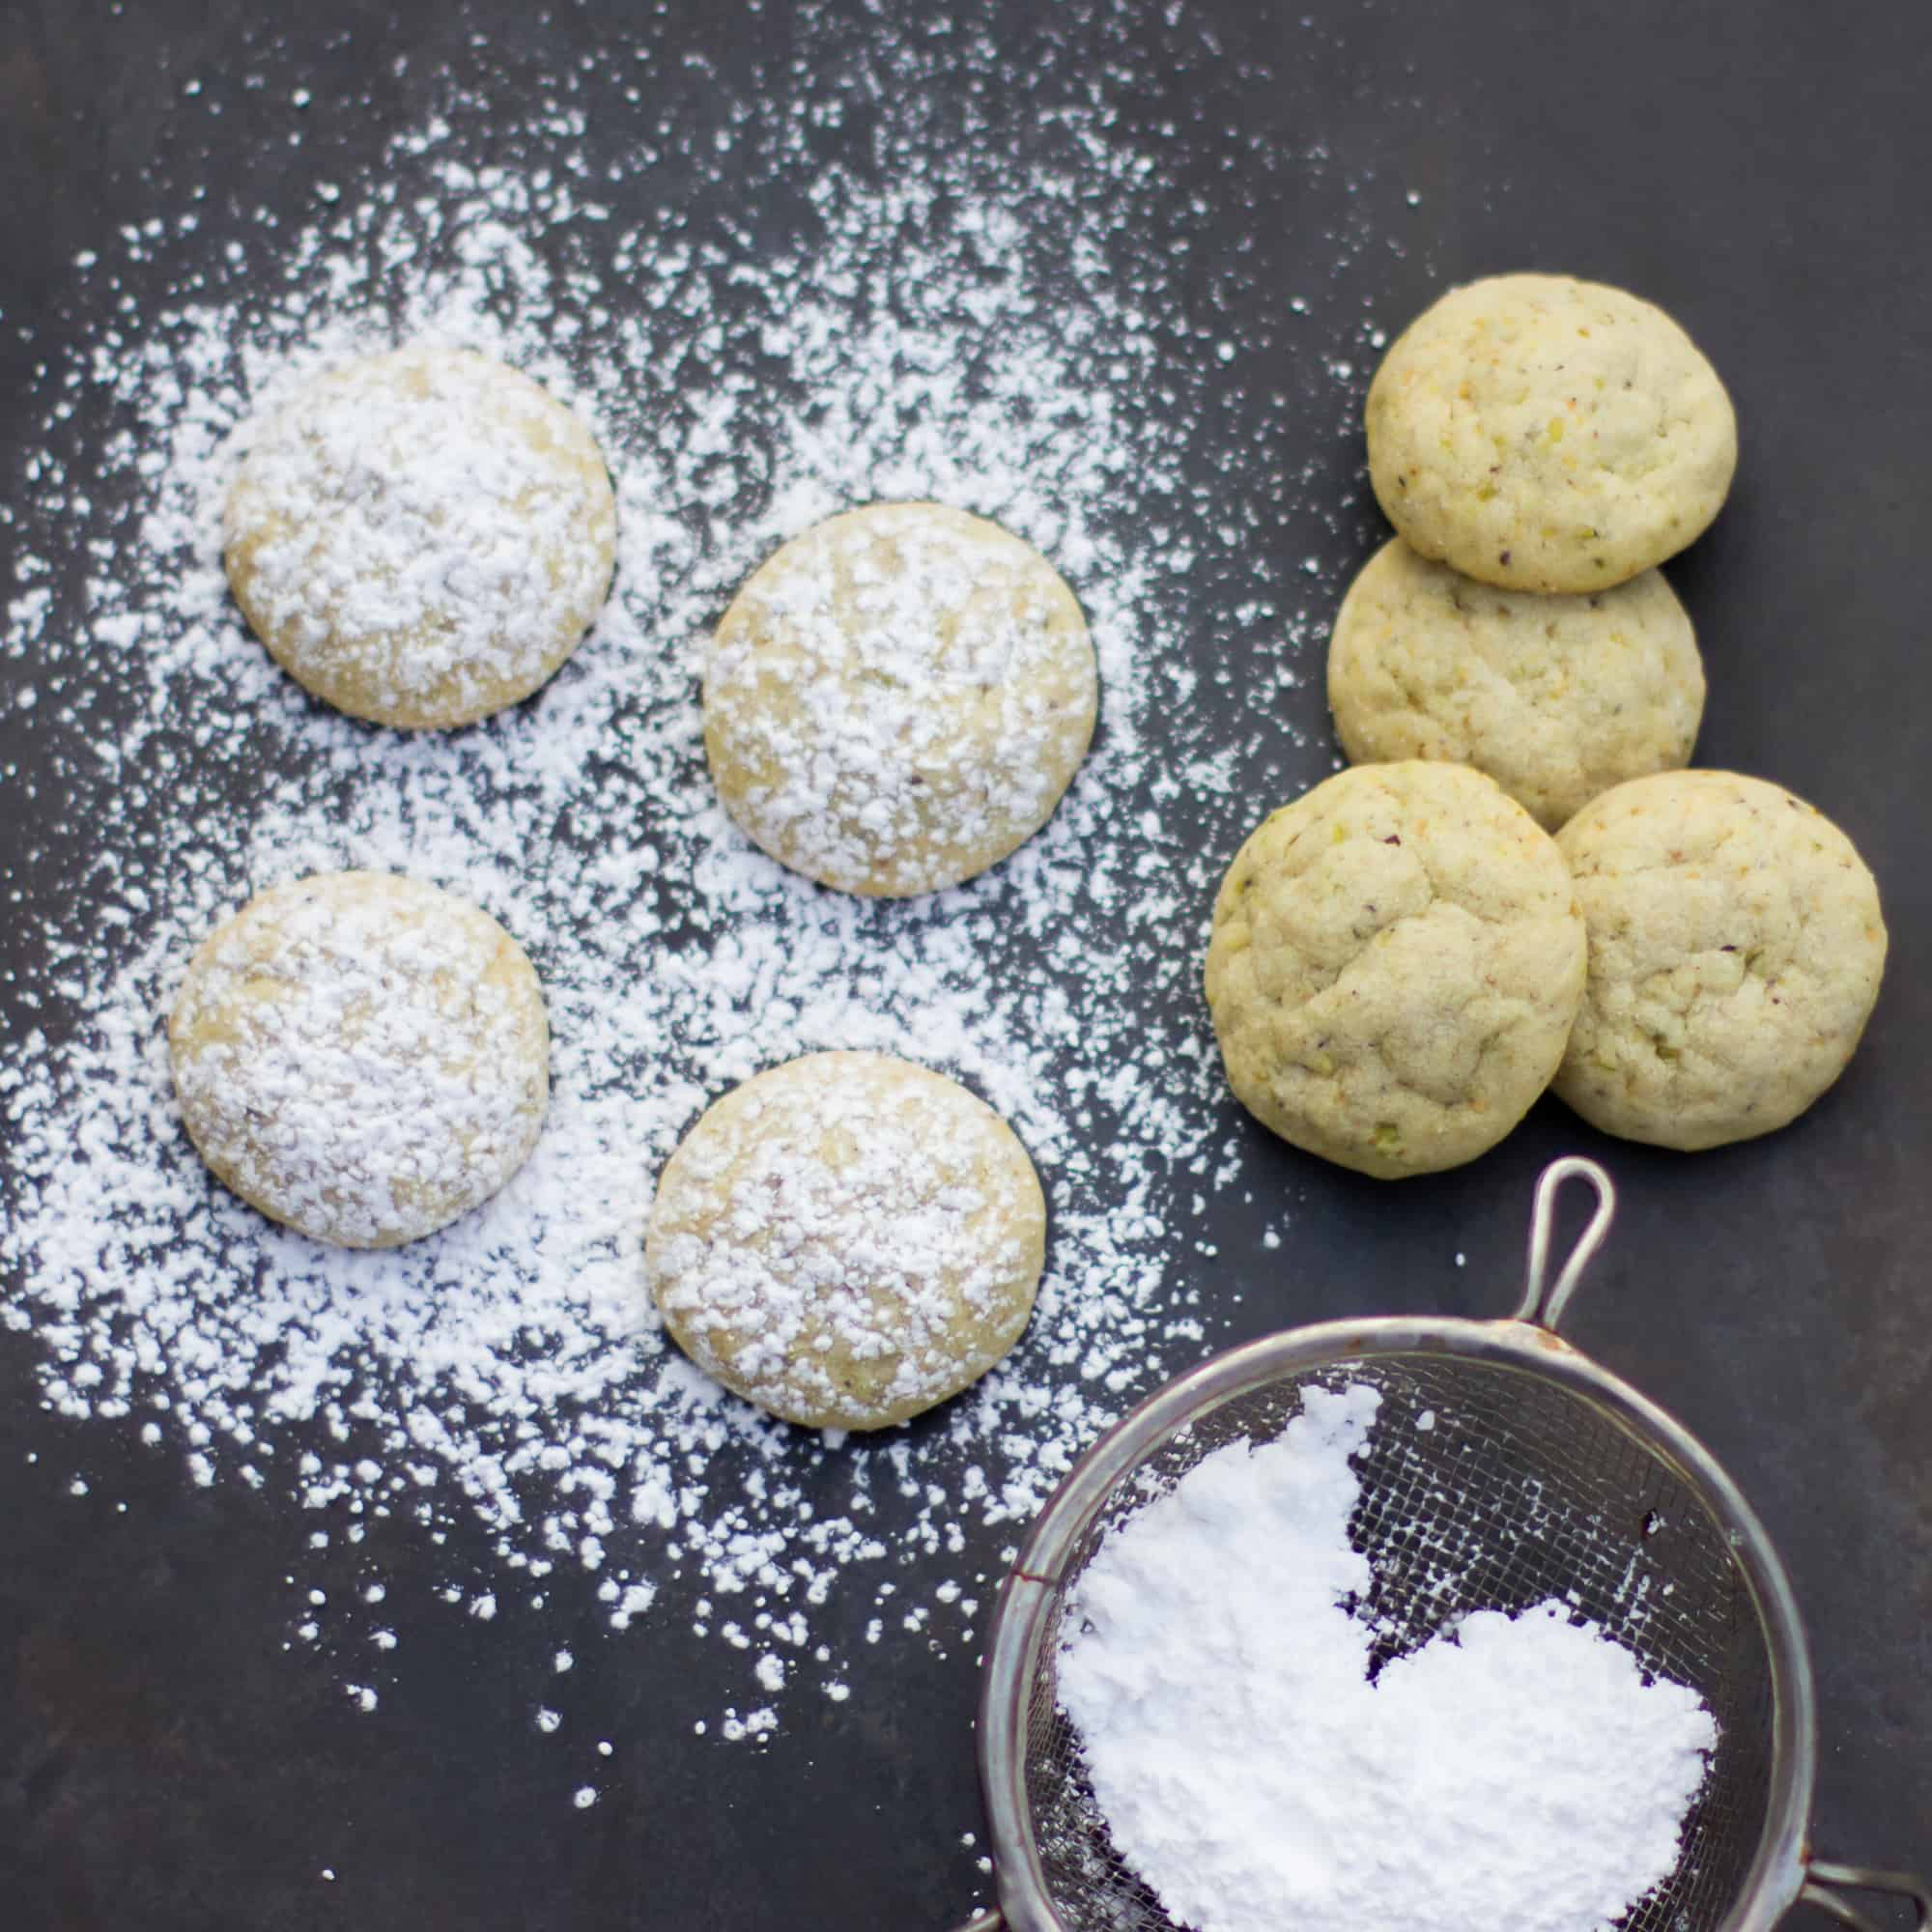 Similar to Mexican wedding cookies, these are light, crumbly and melt in your mouth. The pistachios give the cookie a nutty flavour and a light green colour and the cardamom provides a mild spicy flavour.